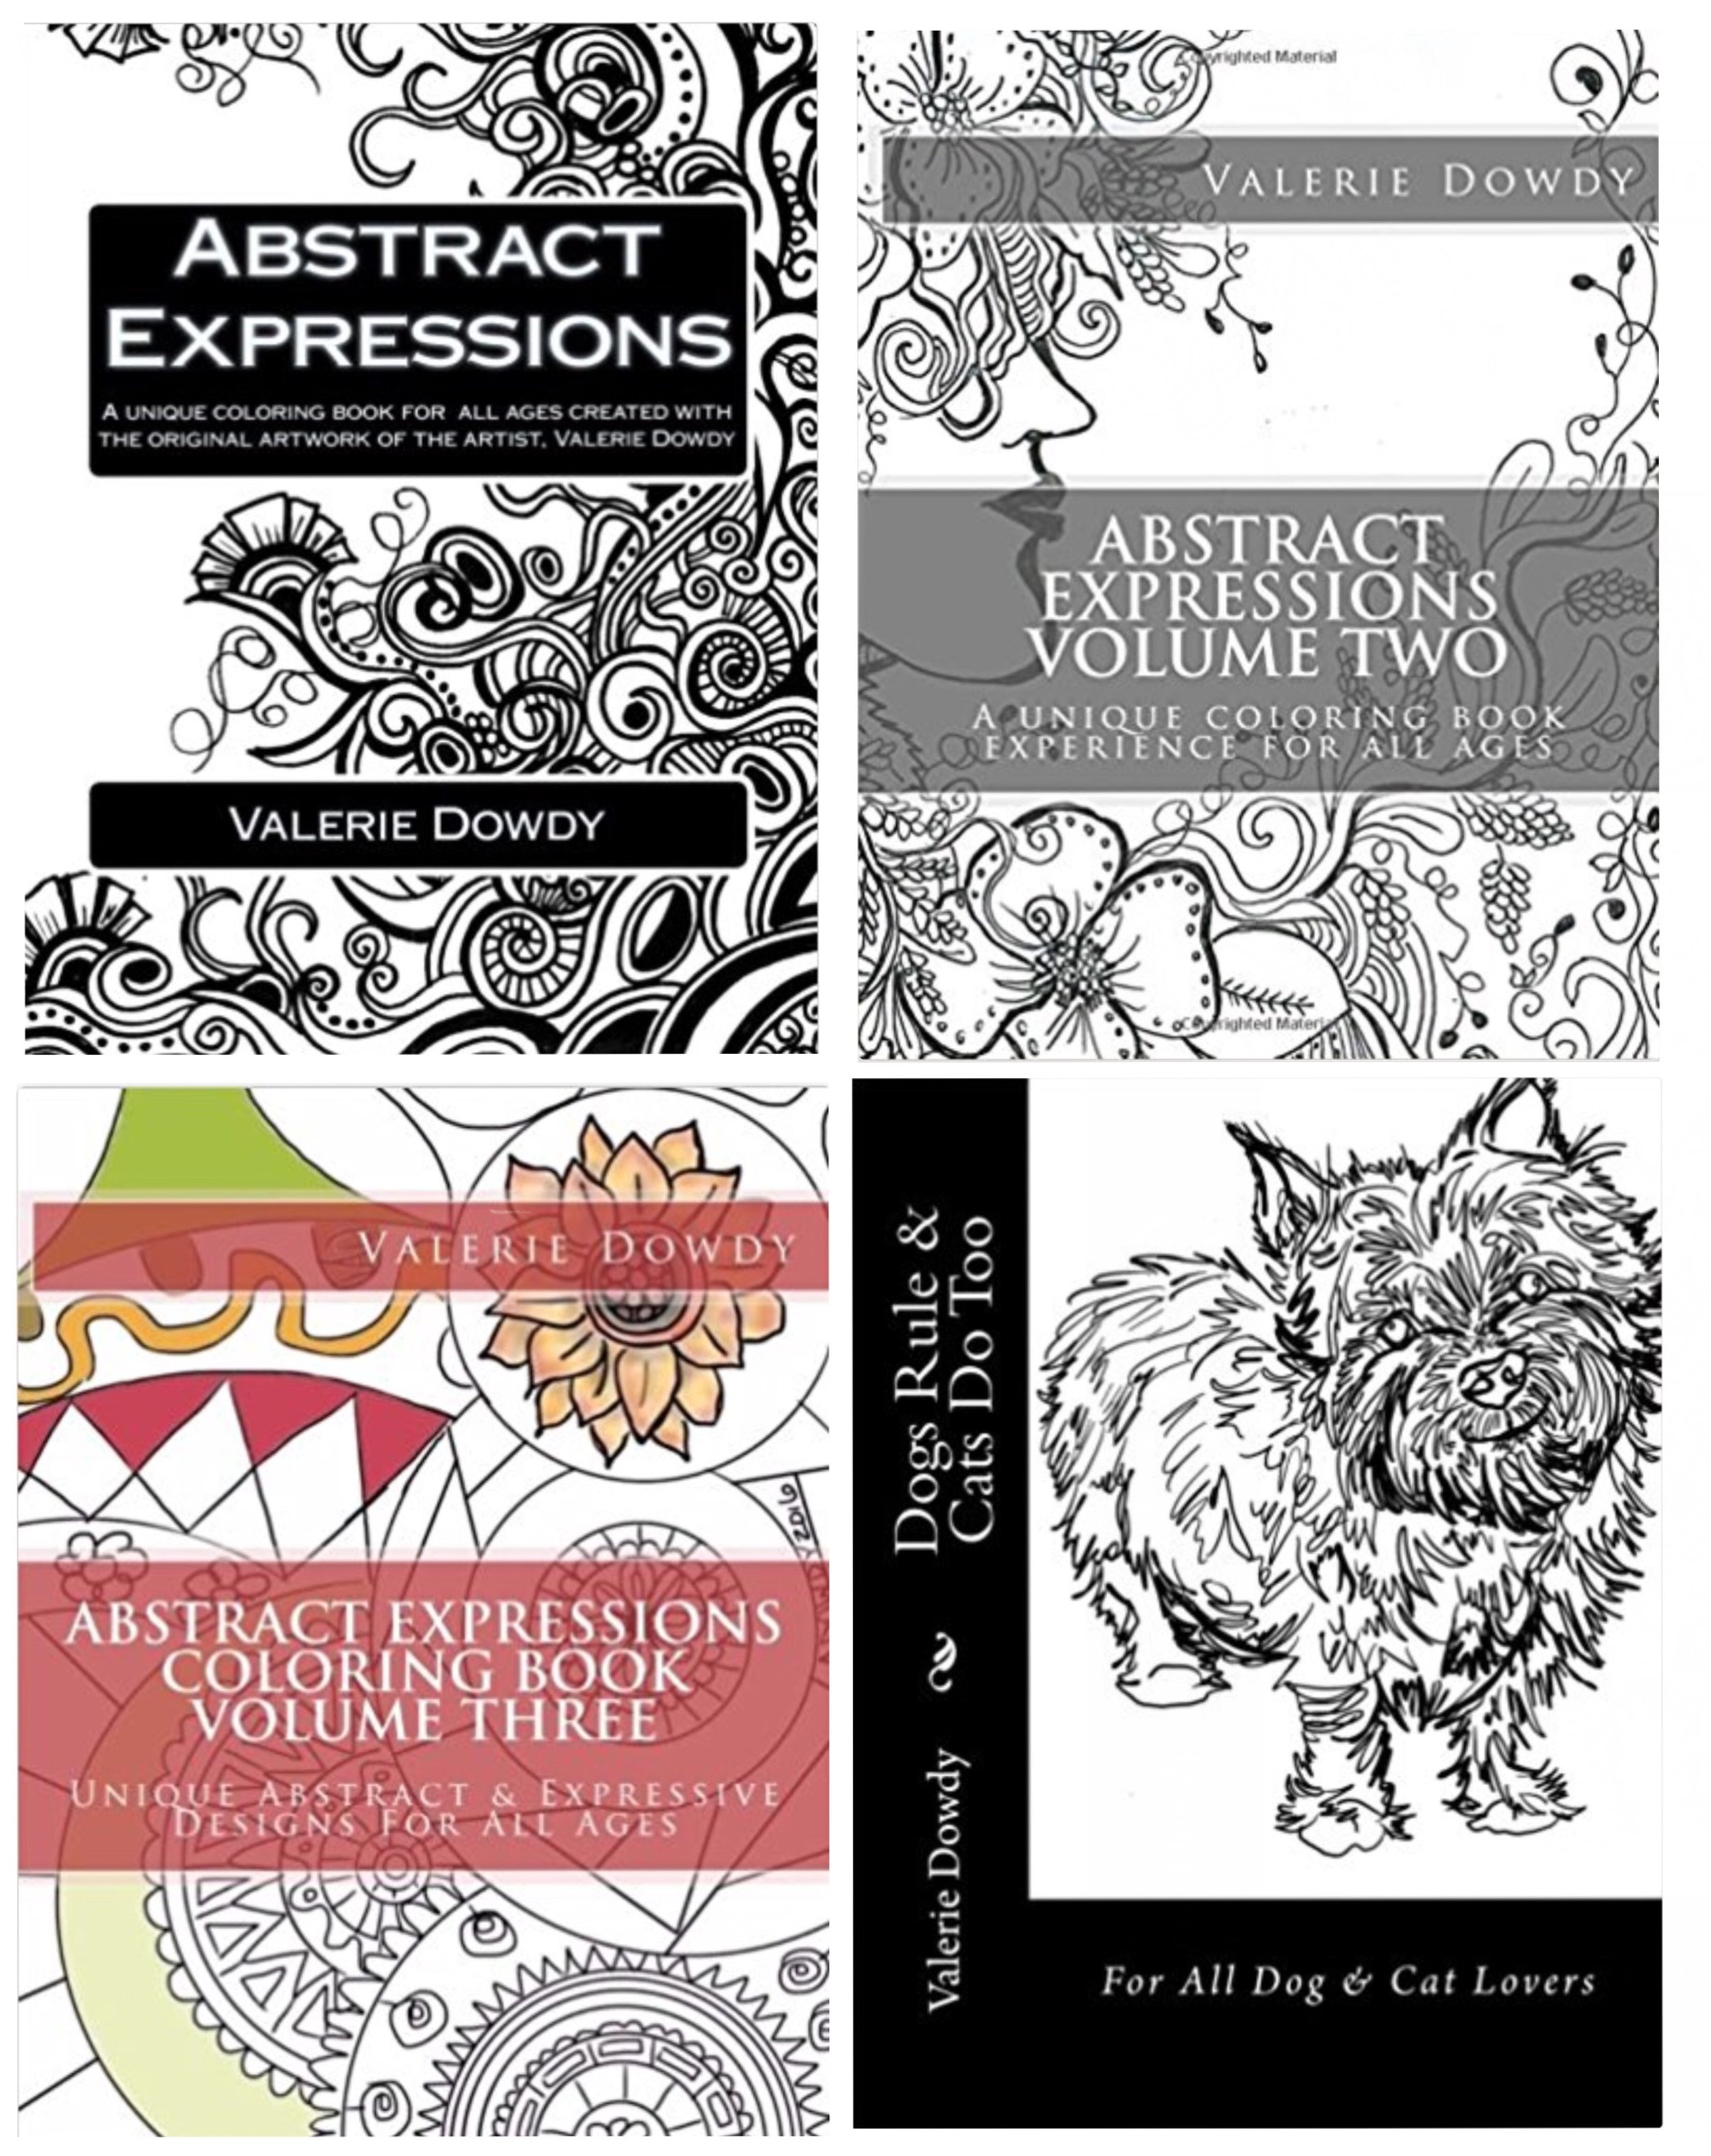 Coloring Books by Valerie Dowdy - Valerie's artwork designs are created to entertain all ages. So grab your favorite medium and prepare to have fun, relax, refocus and re-connect with your life with any of her designs. All her books are hand drawn images and self published. Price: $10 each coloring book | $20 gift set which includes book + coloring pencils